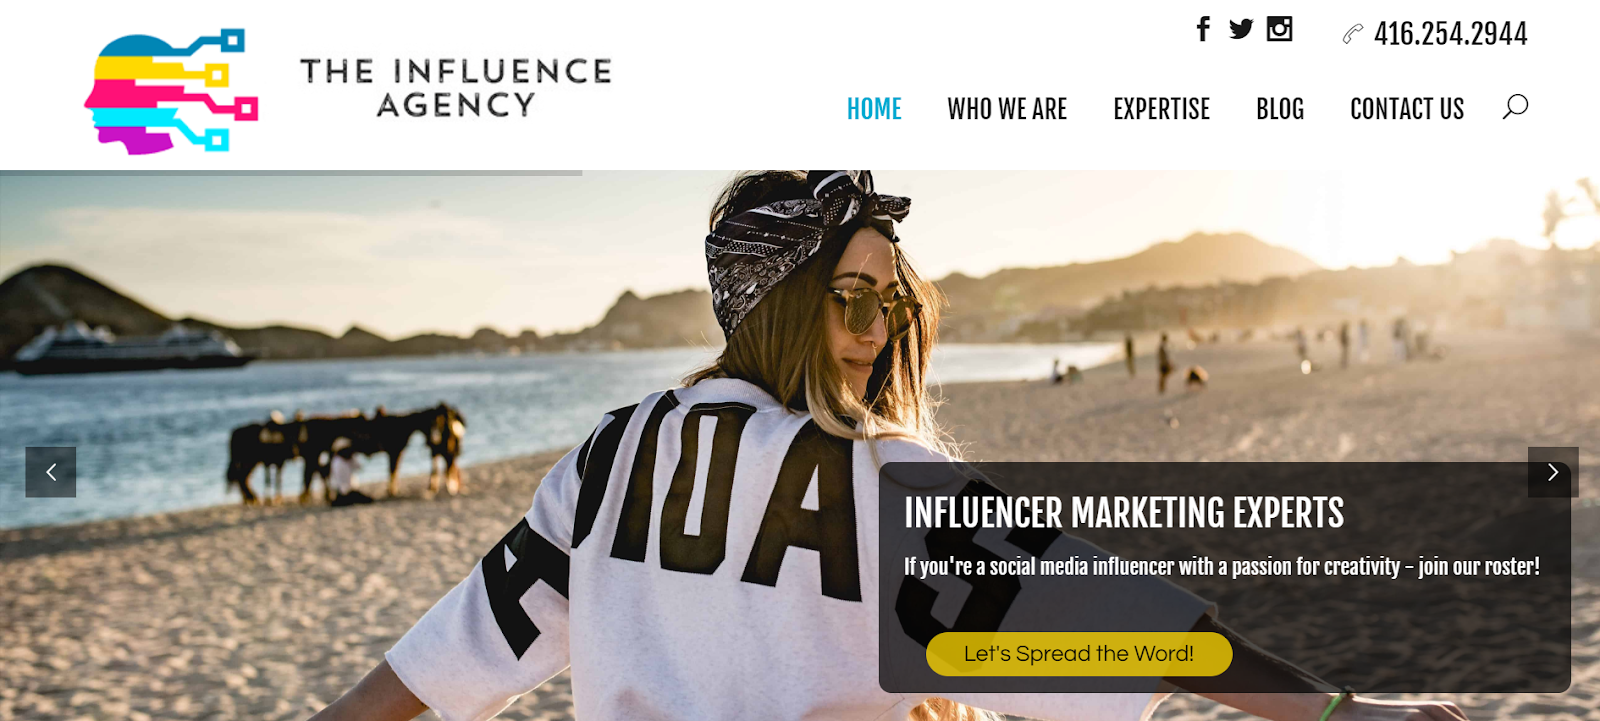 The Influence Agency Influencer Marketing Agency